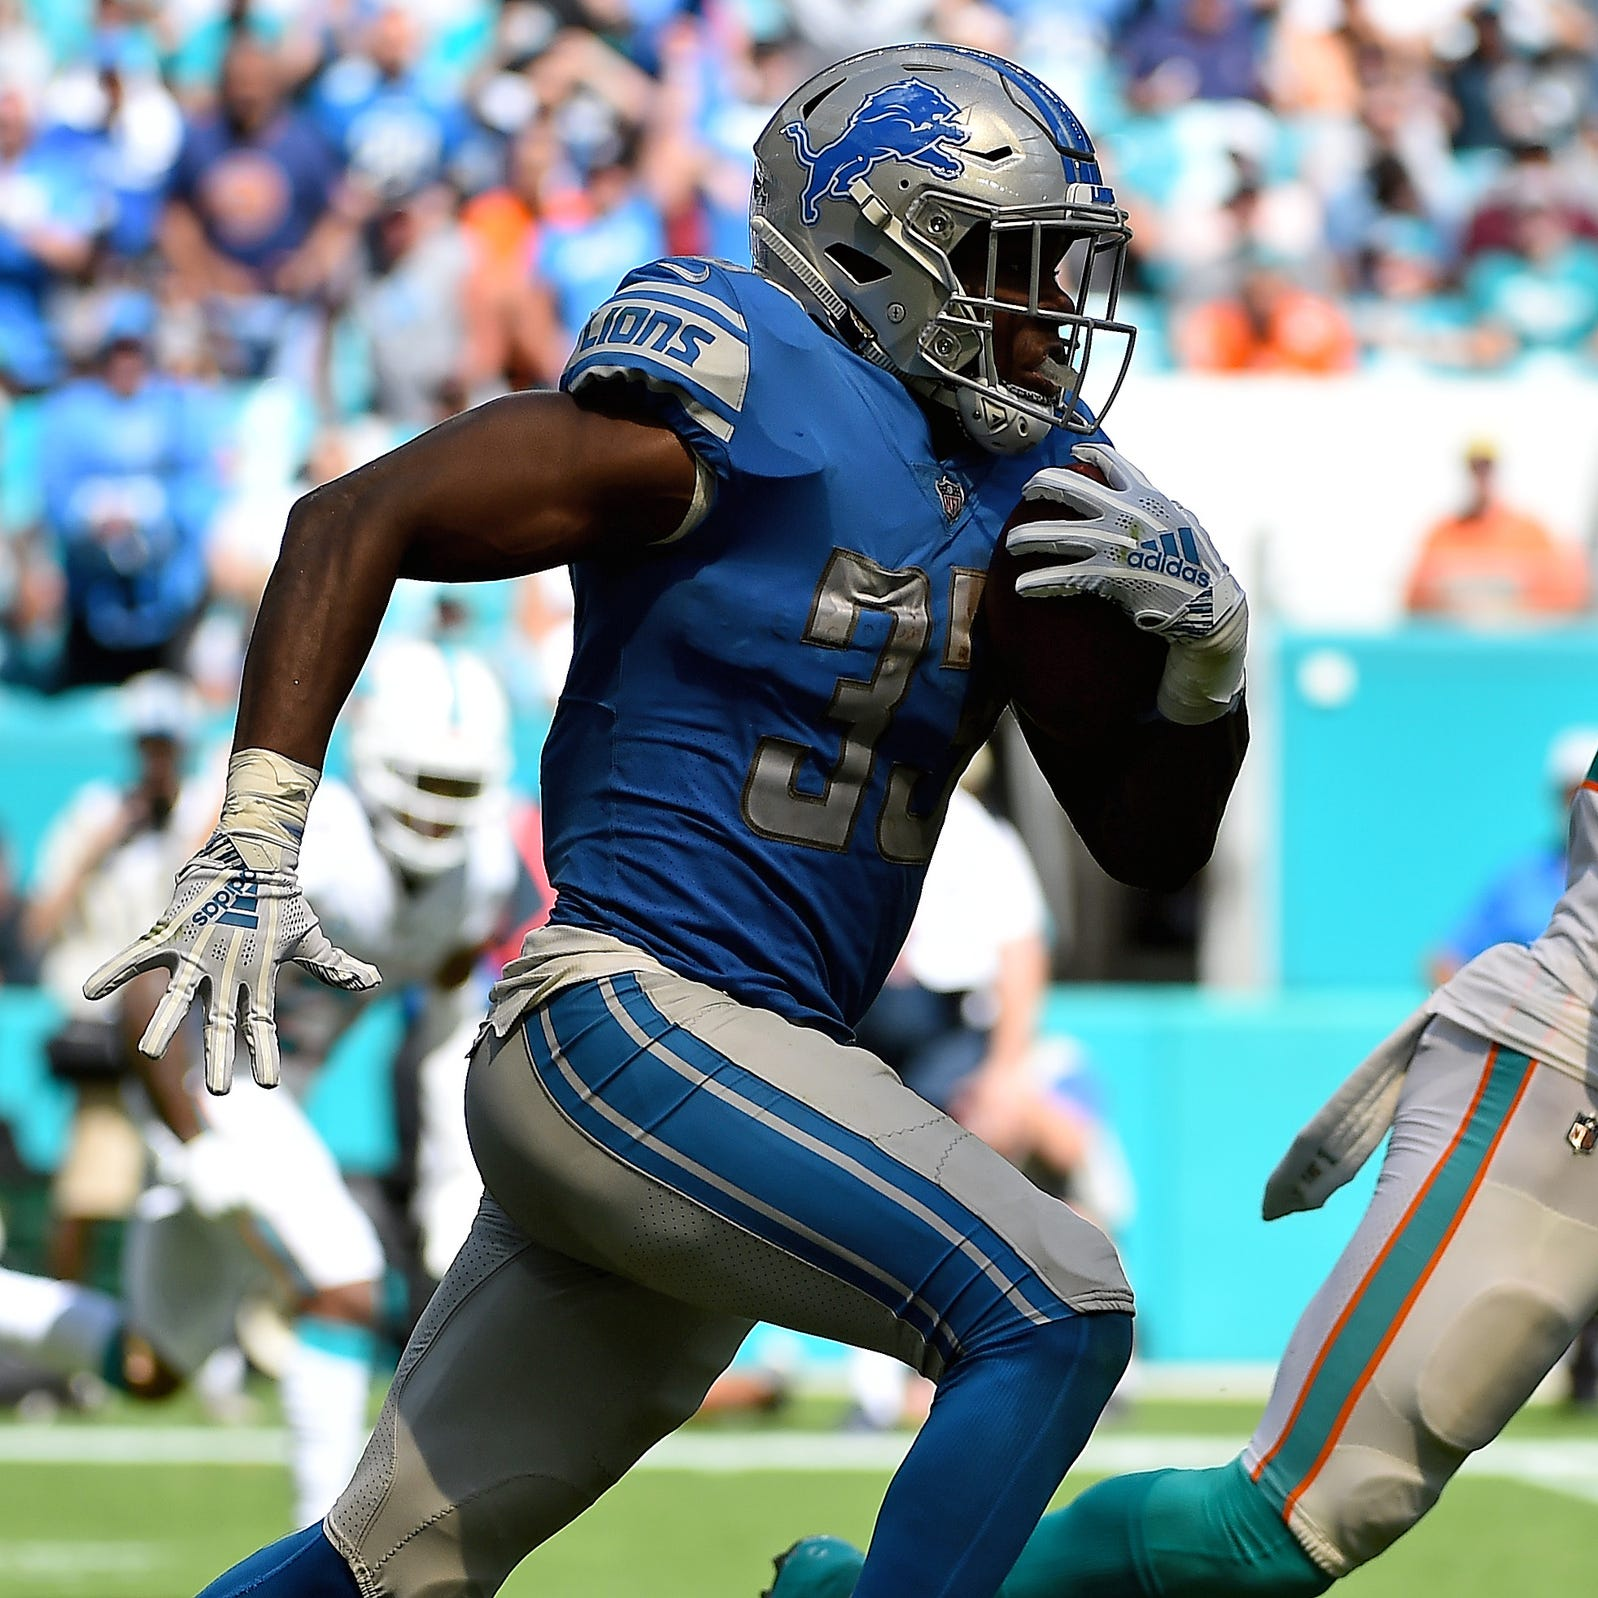 Detroit Lions are giddy about their past two draft classes. Here's why